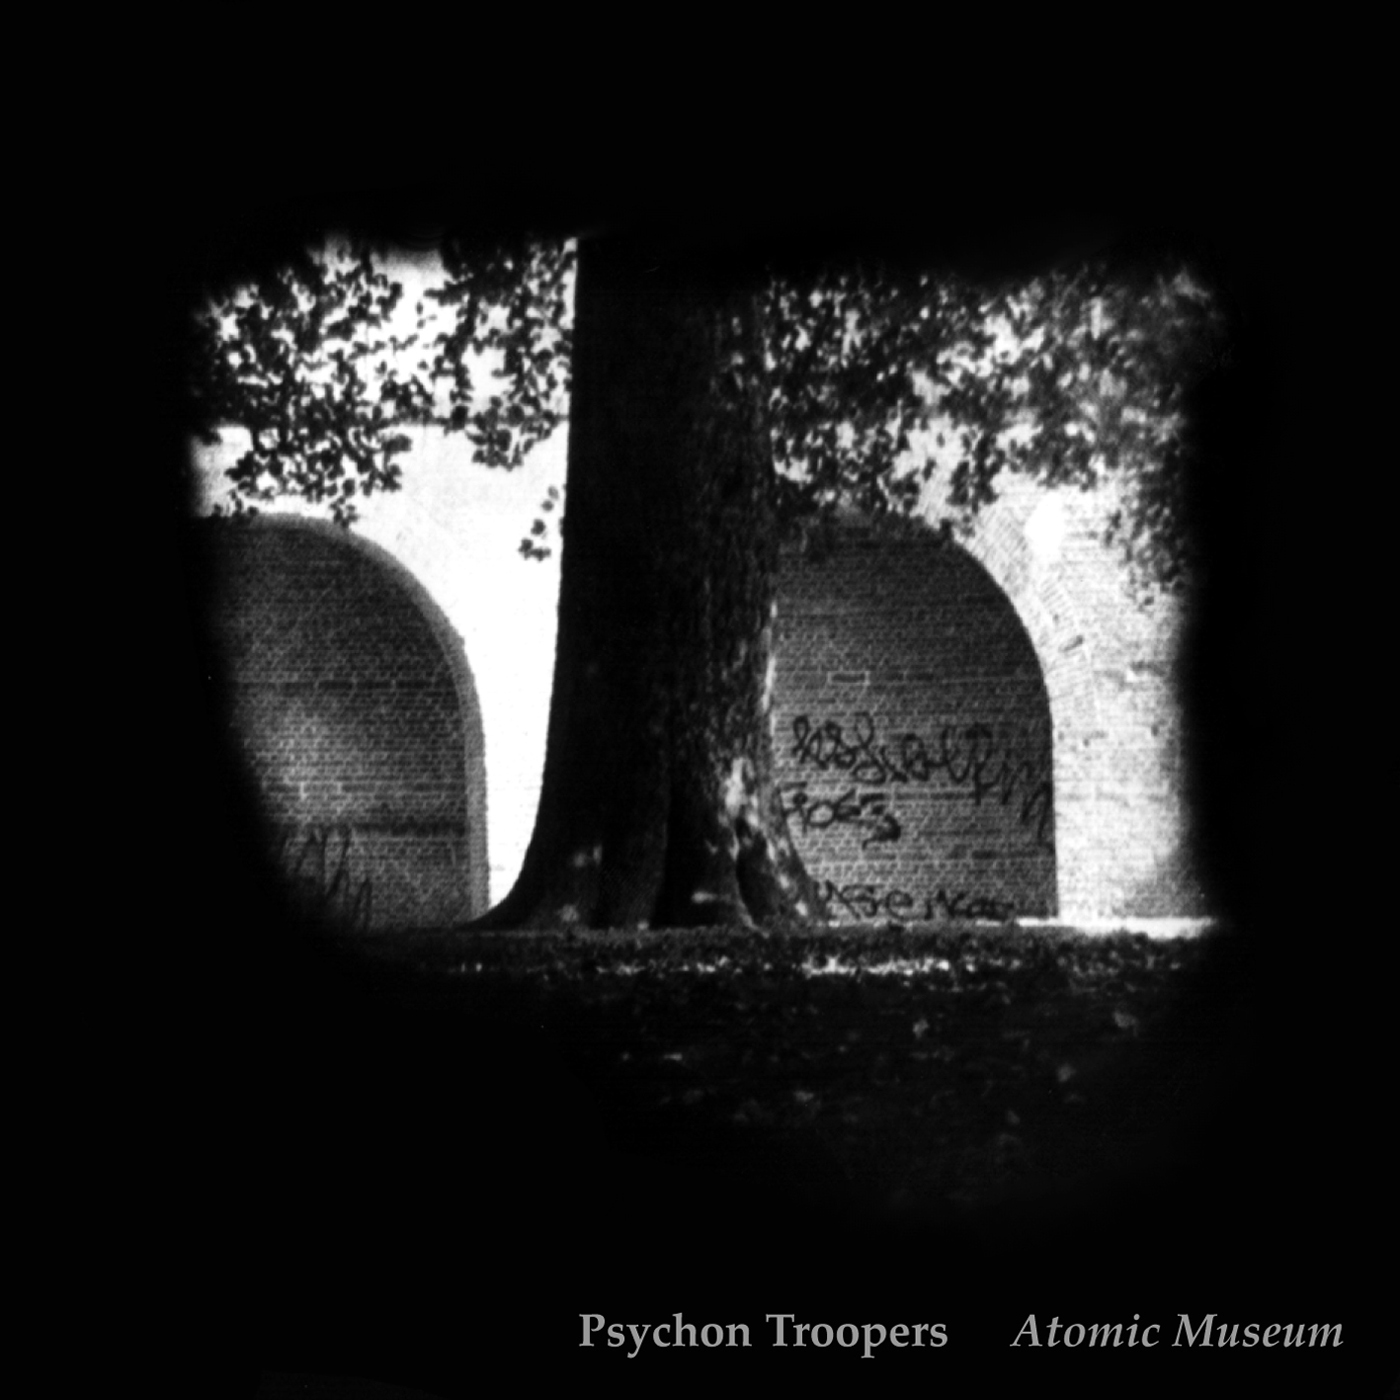 NM002: psychon troopers - atomic museum